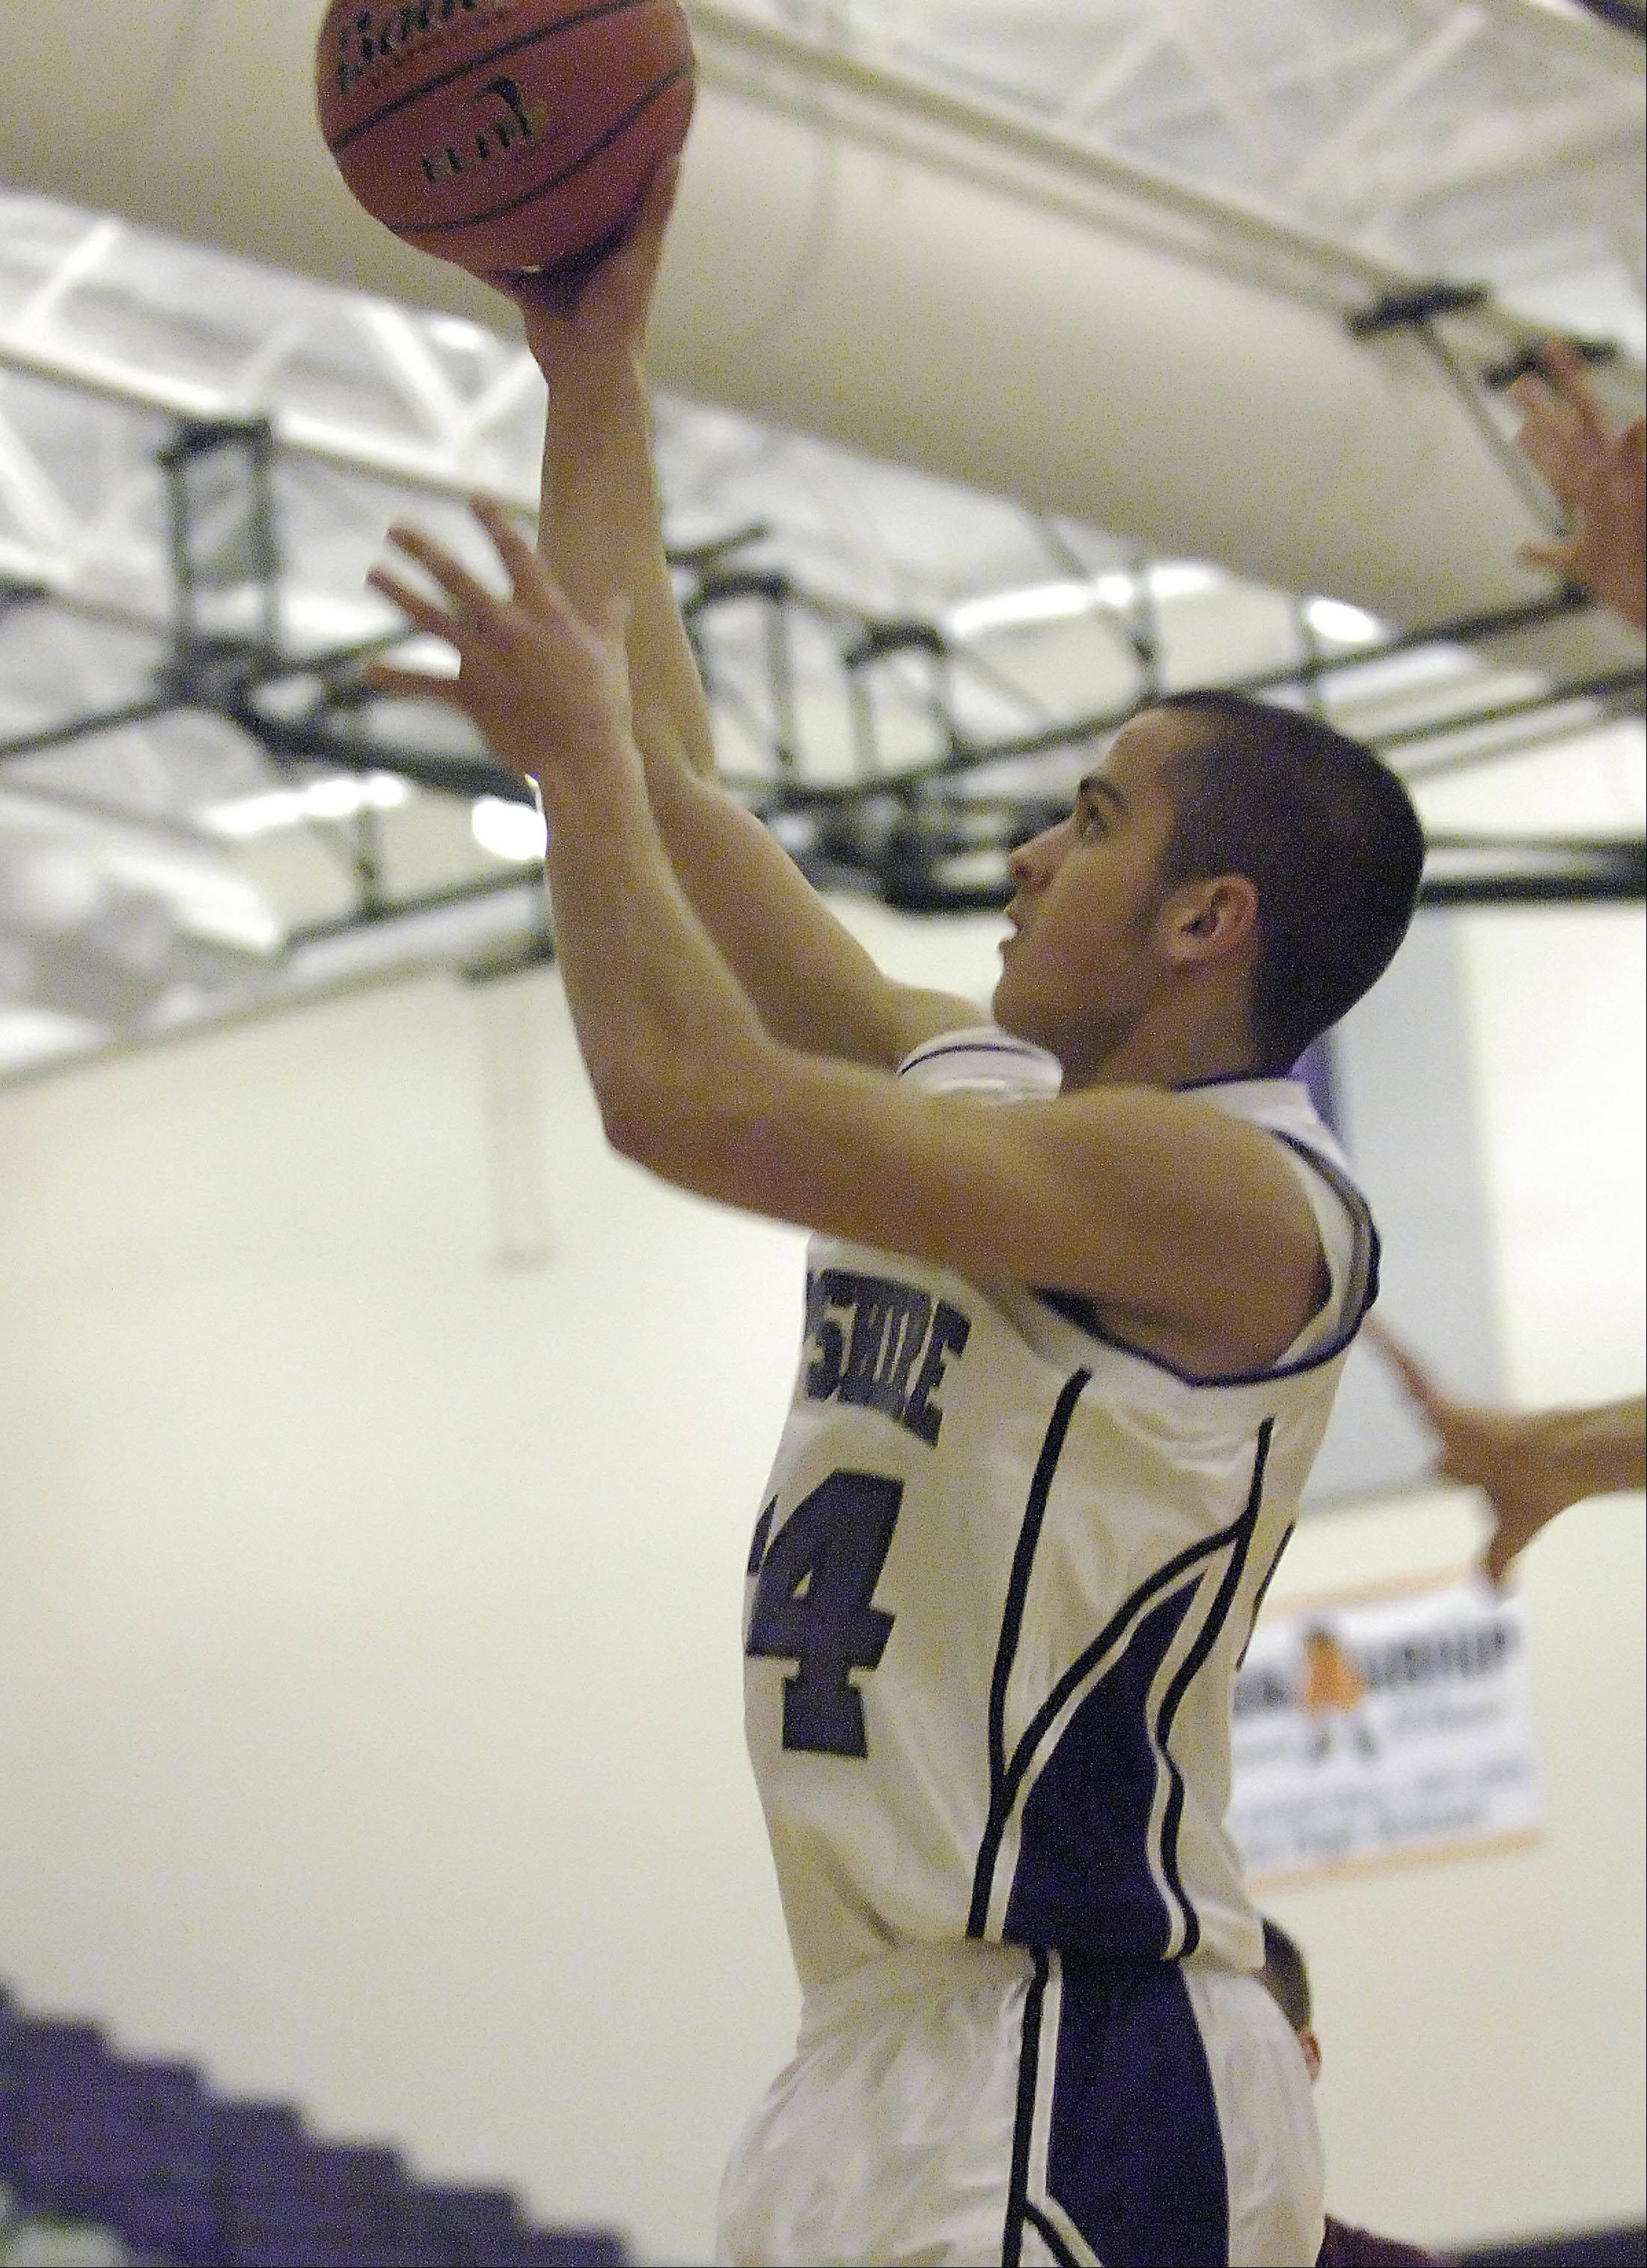 Images from the Marengo vs. Hampshire boys basketball game Tuesday, December 11, 2012.